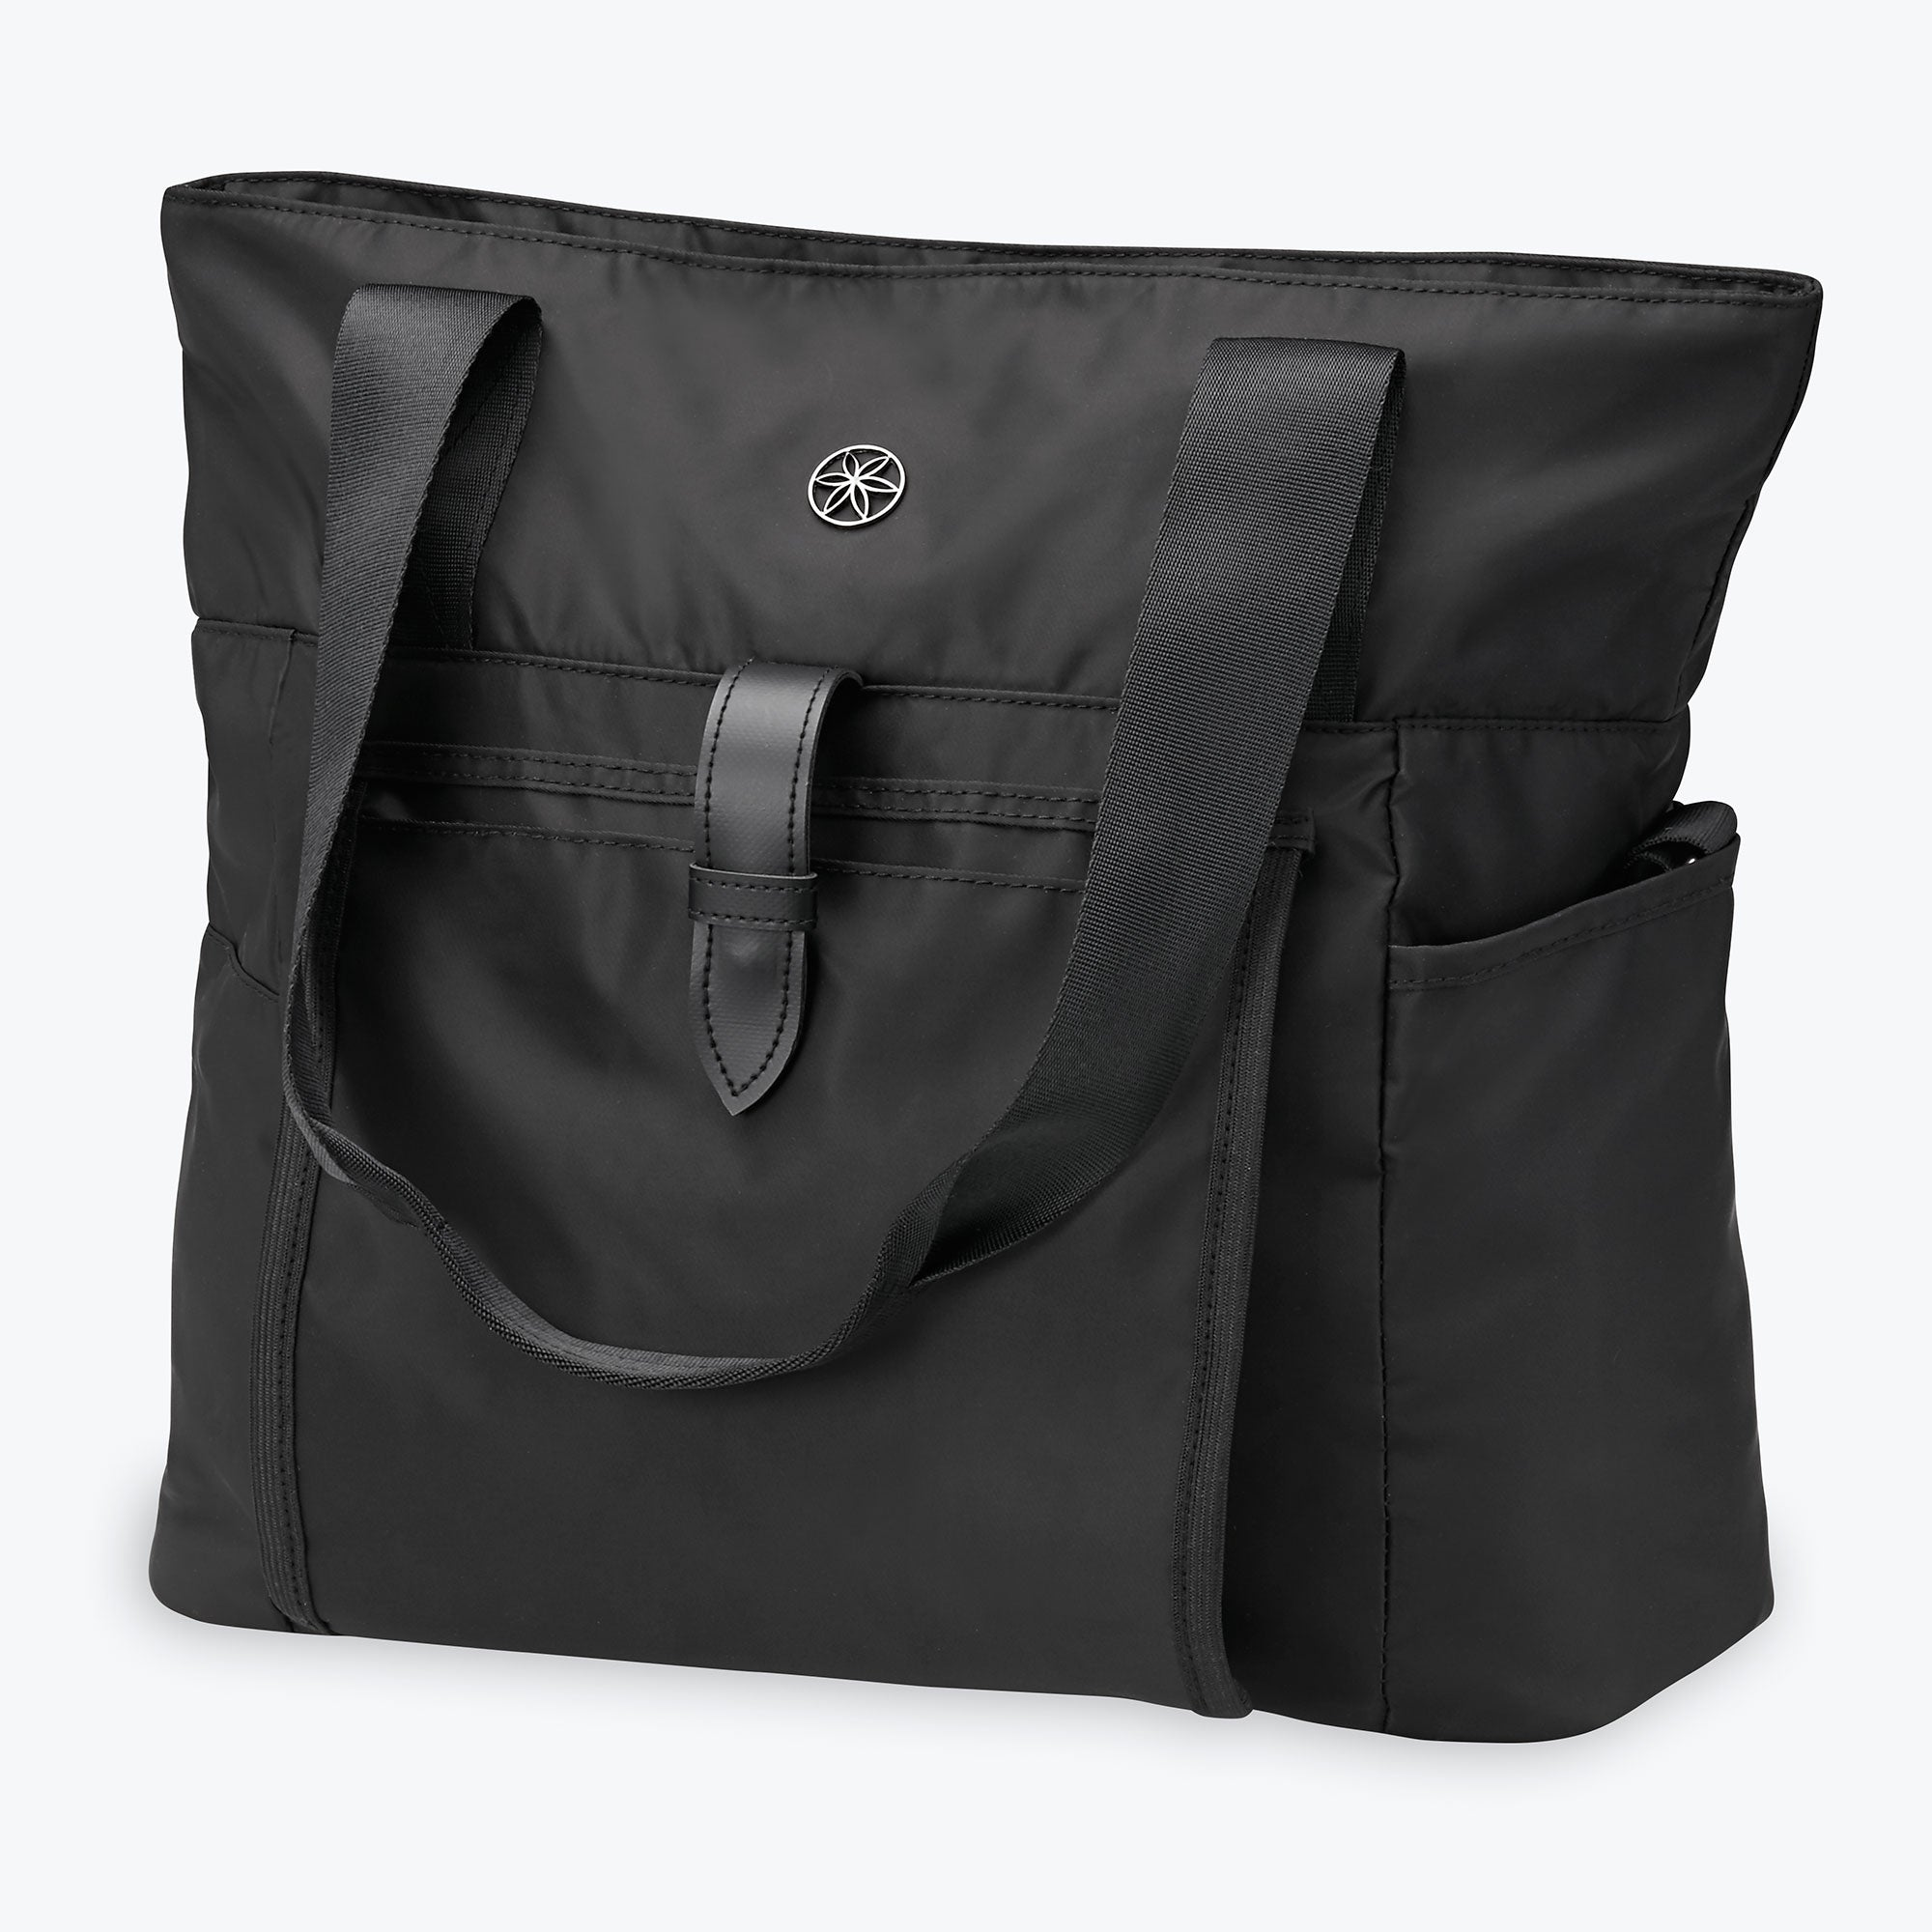 Image of Everyday Yoga Tote